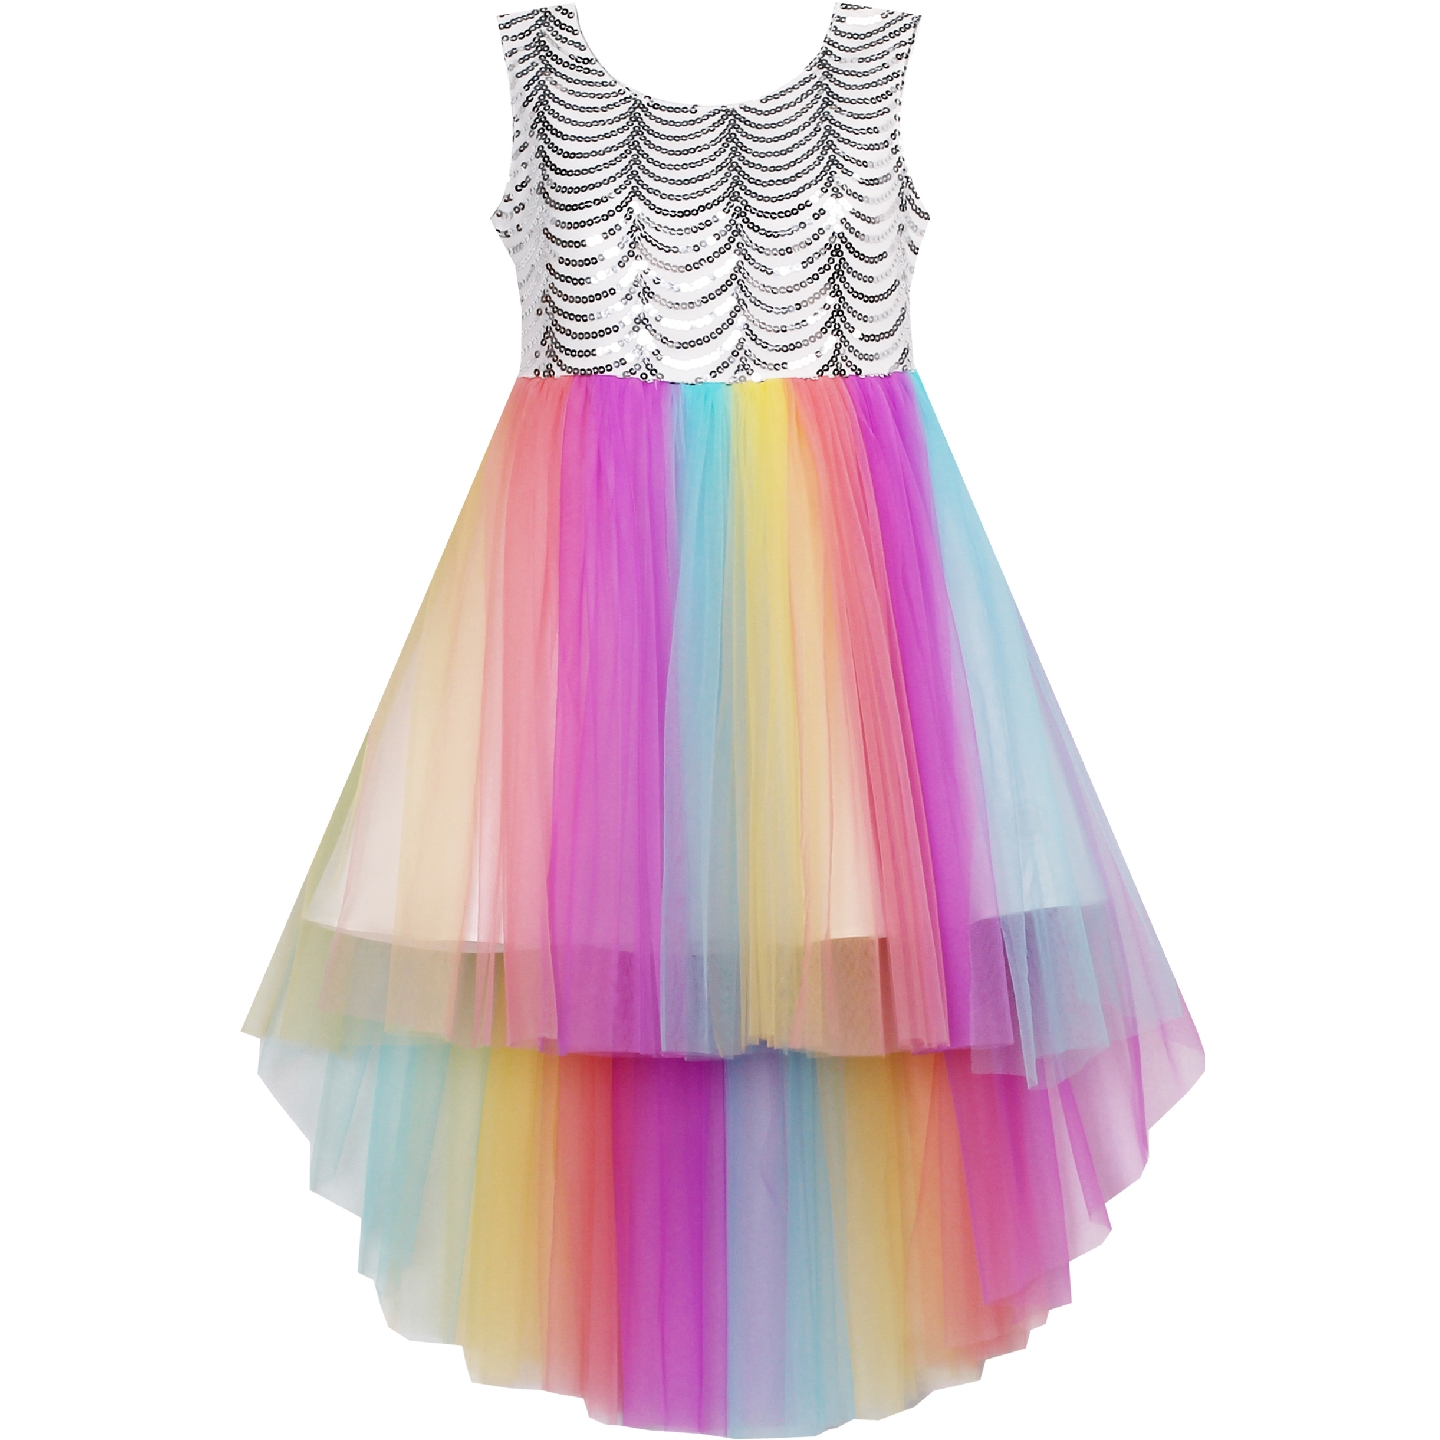 Flower     Girl     Dress   Sequin Mesh Party Wedding Princess Tulle Rainbow Summer   Dresses   Glitter Clothes Pageant Gown Vestidos Carnival